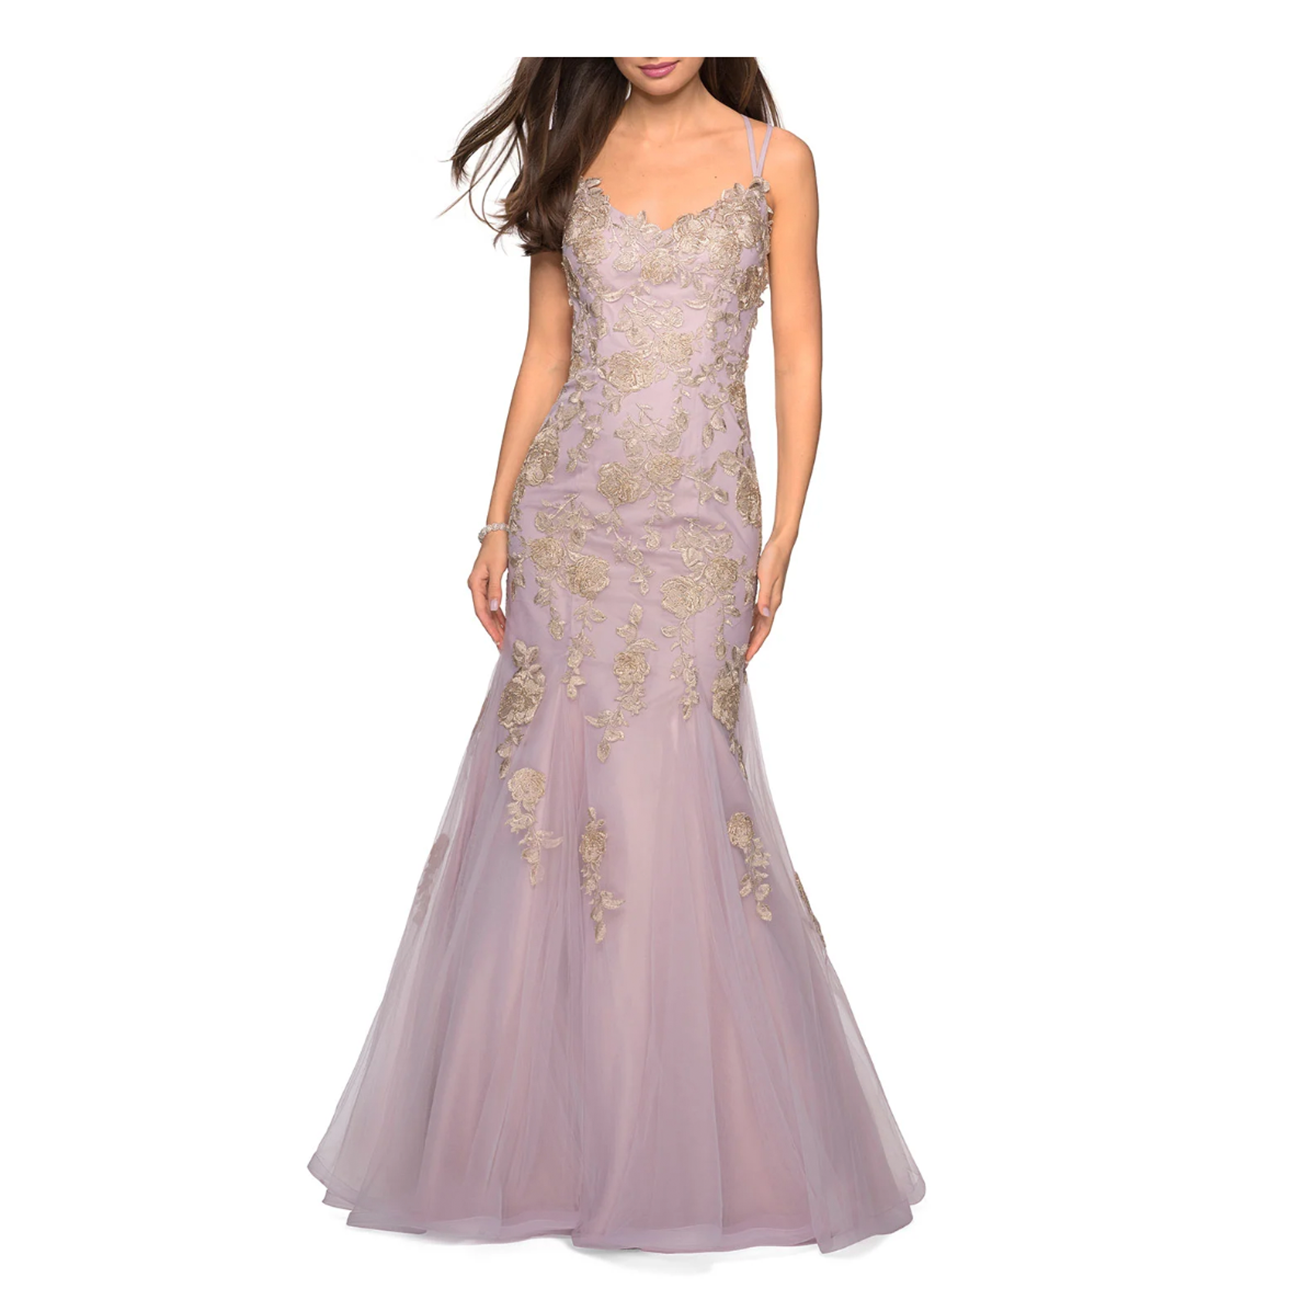 colorful wedding gowns La Femme Sleeveless Golden Lace Applique Mermaid Gown Strappy-Back mauve gold neiman marcus photo